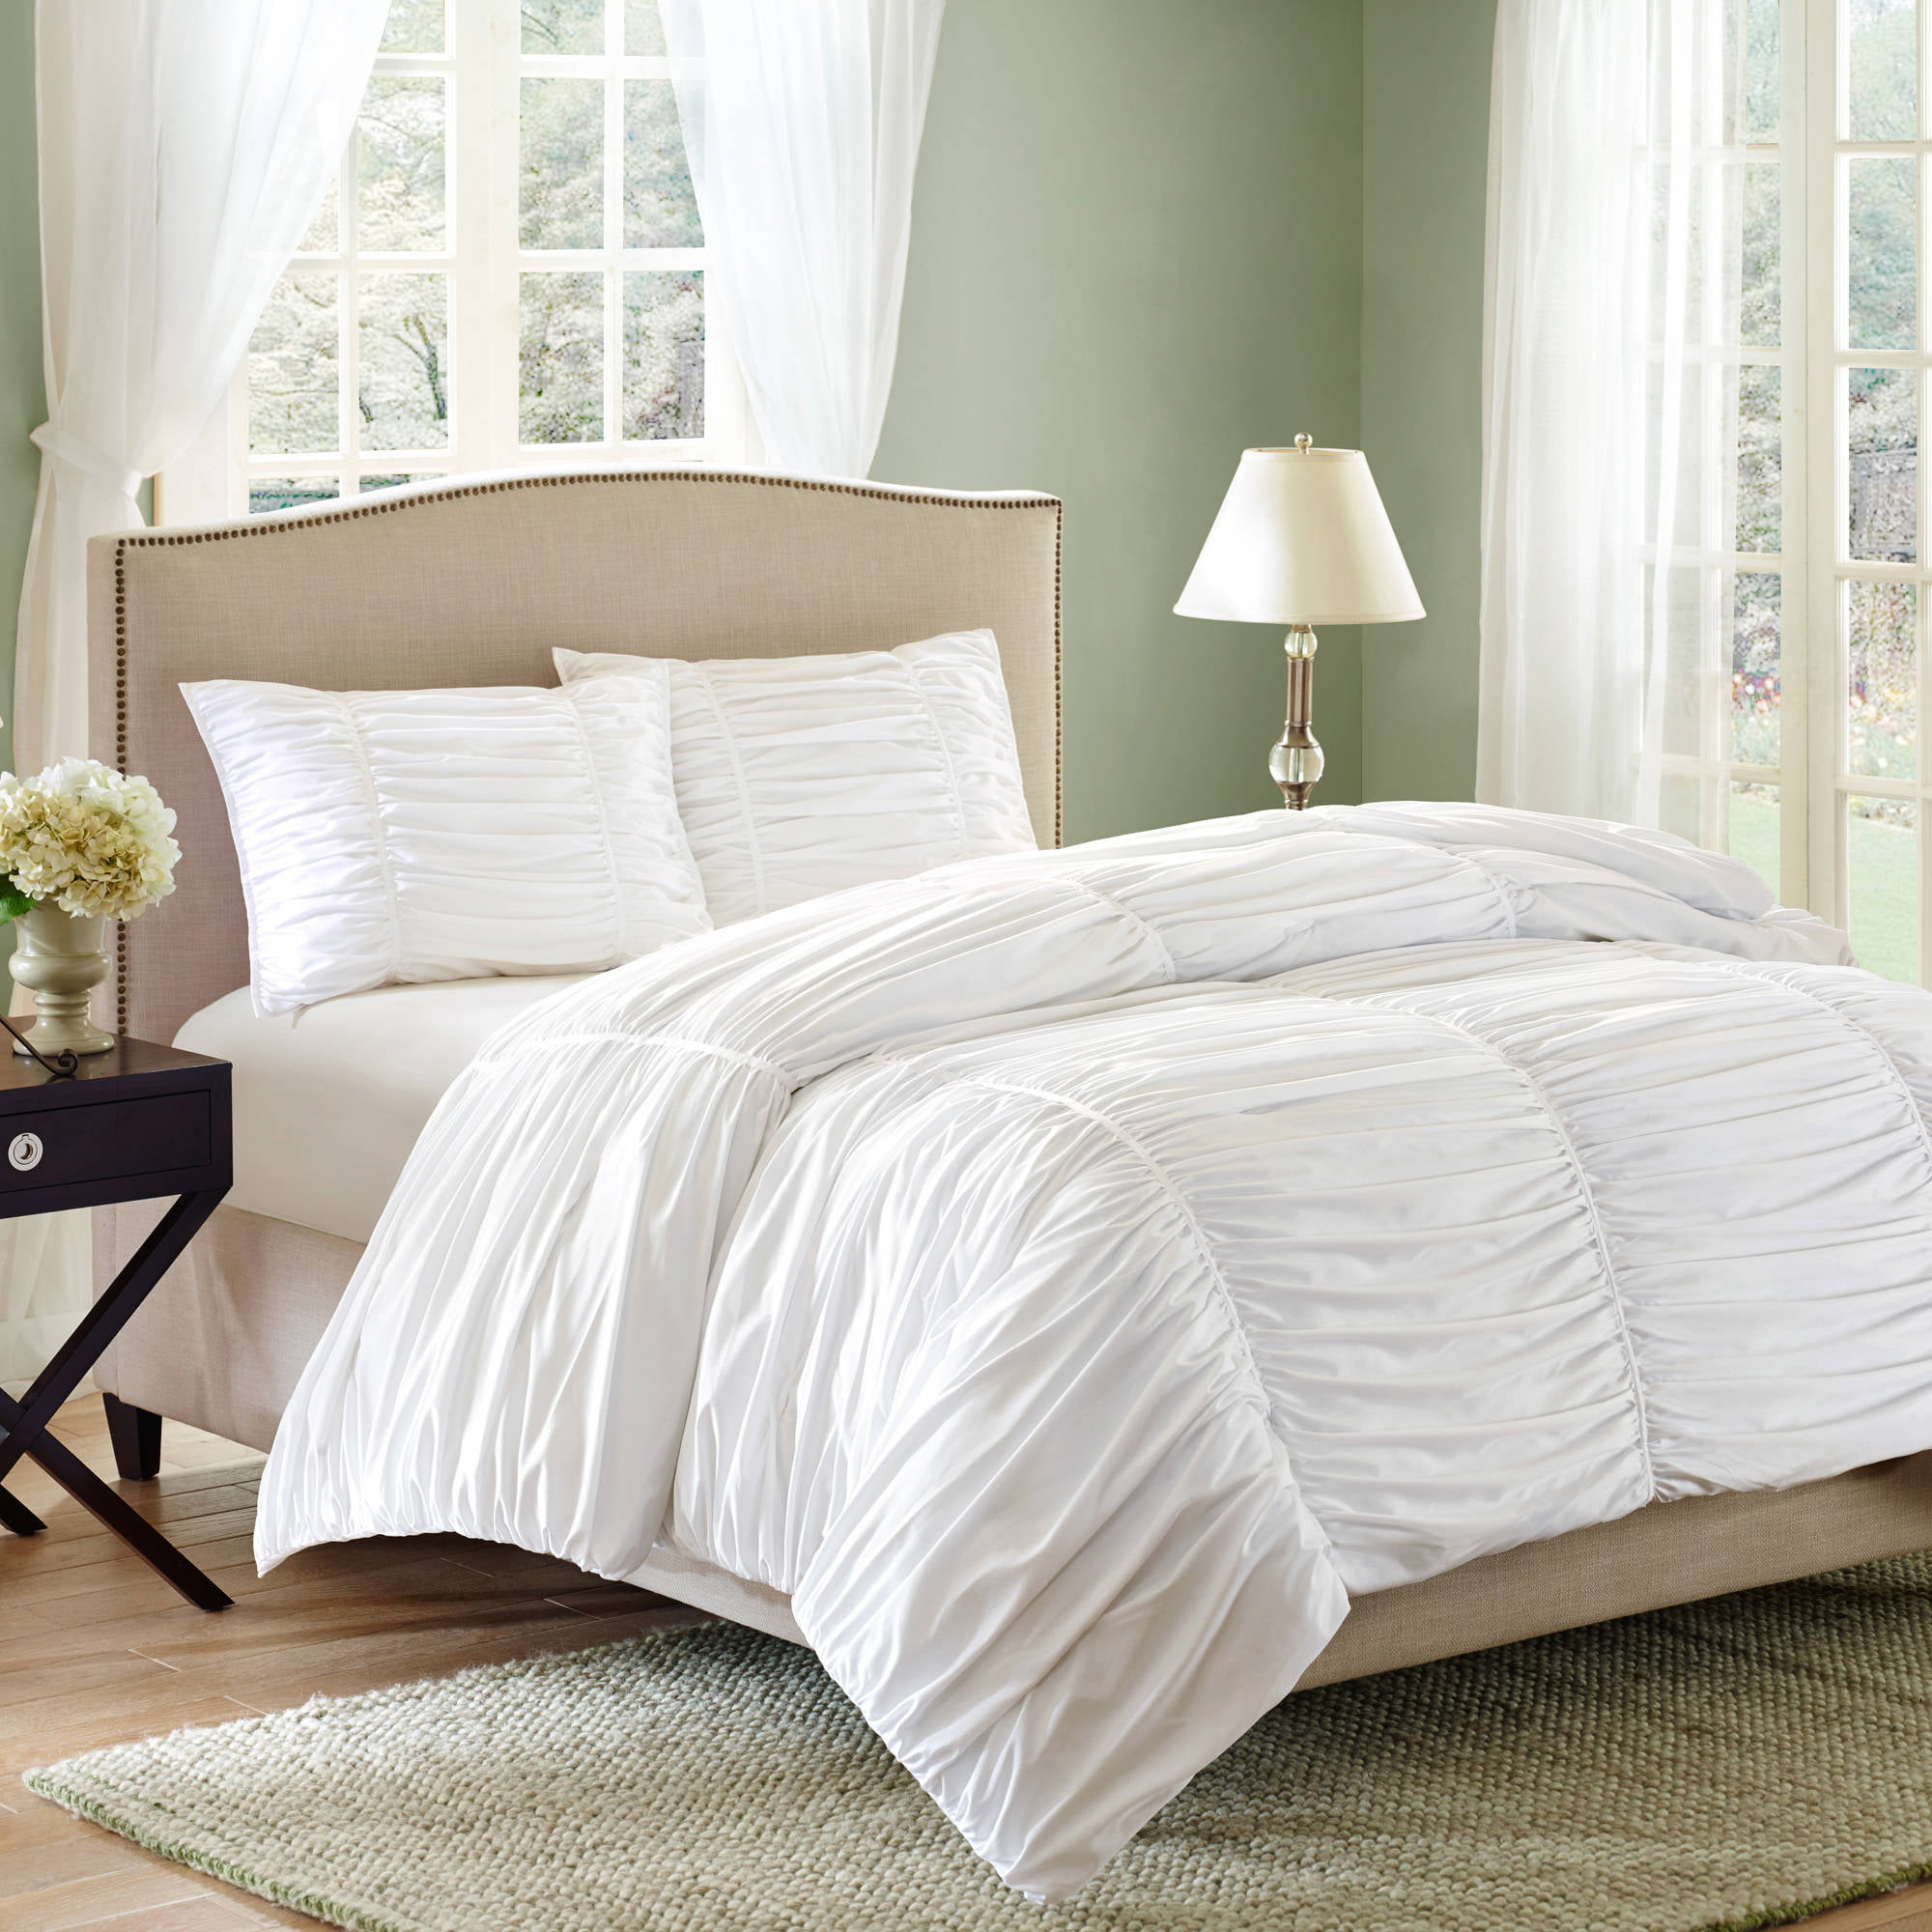 bed paisley inc set california luxe pdx bath collection wayfair textiles den reviews comforter design nmk hotel piece